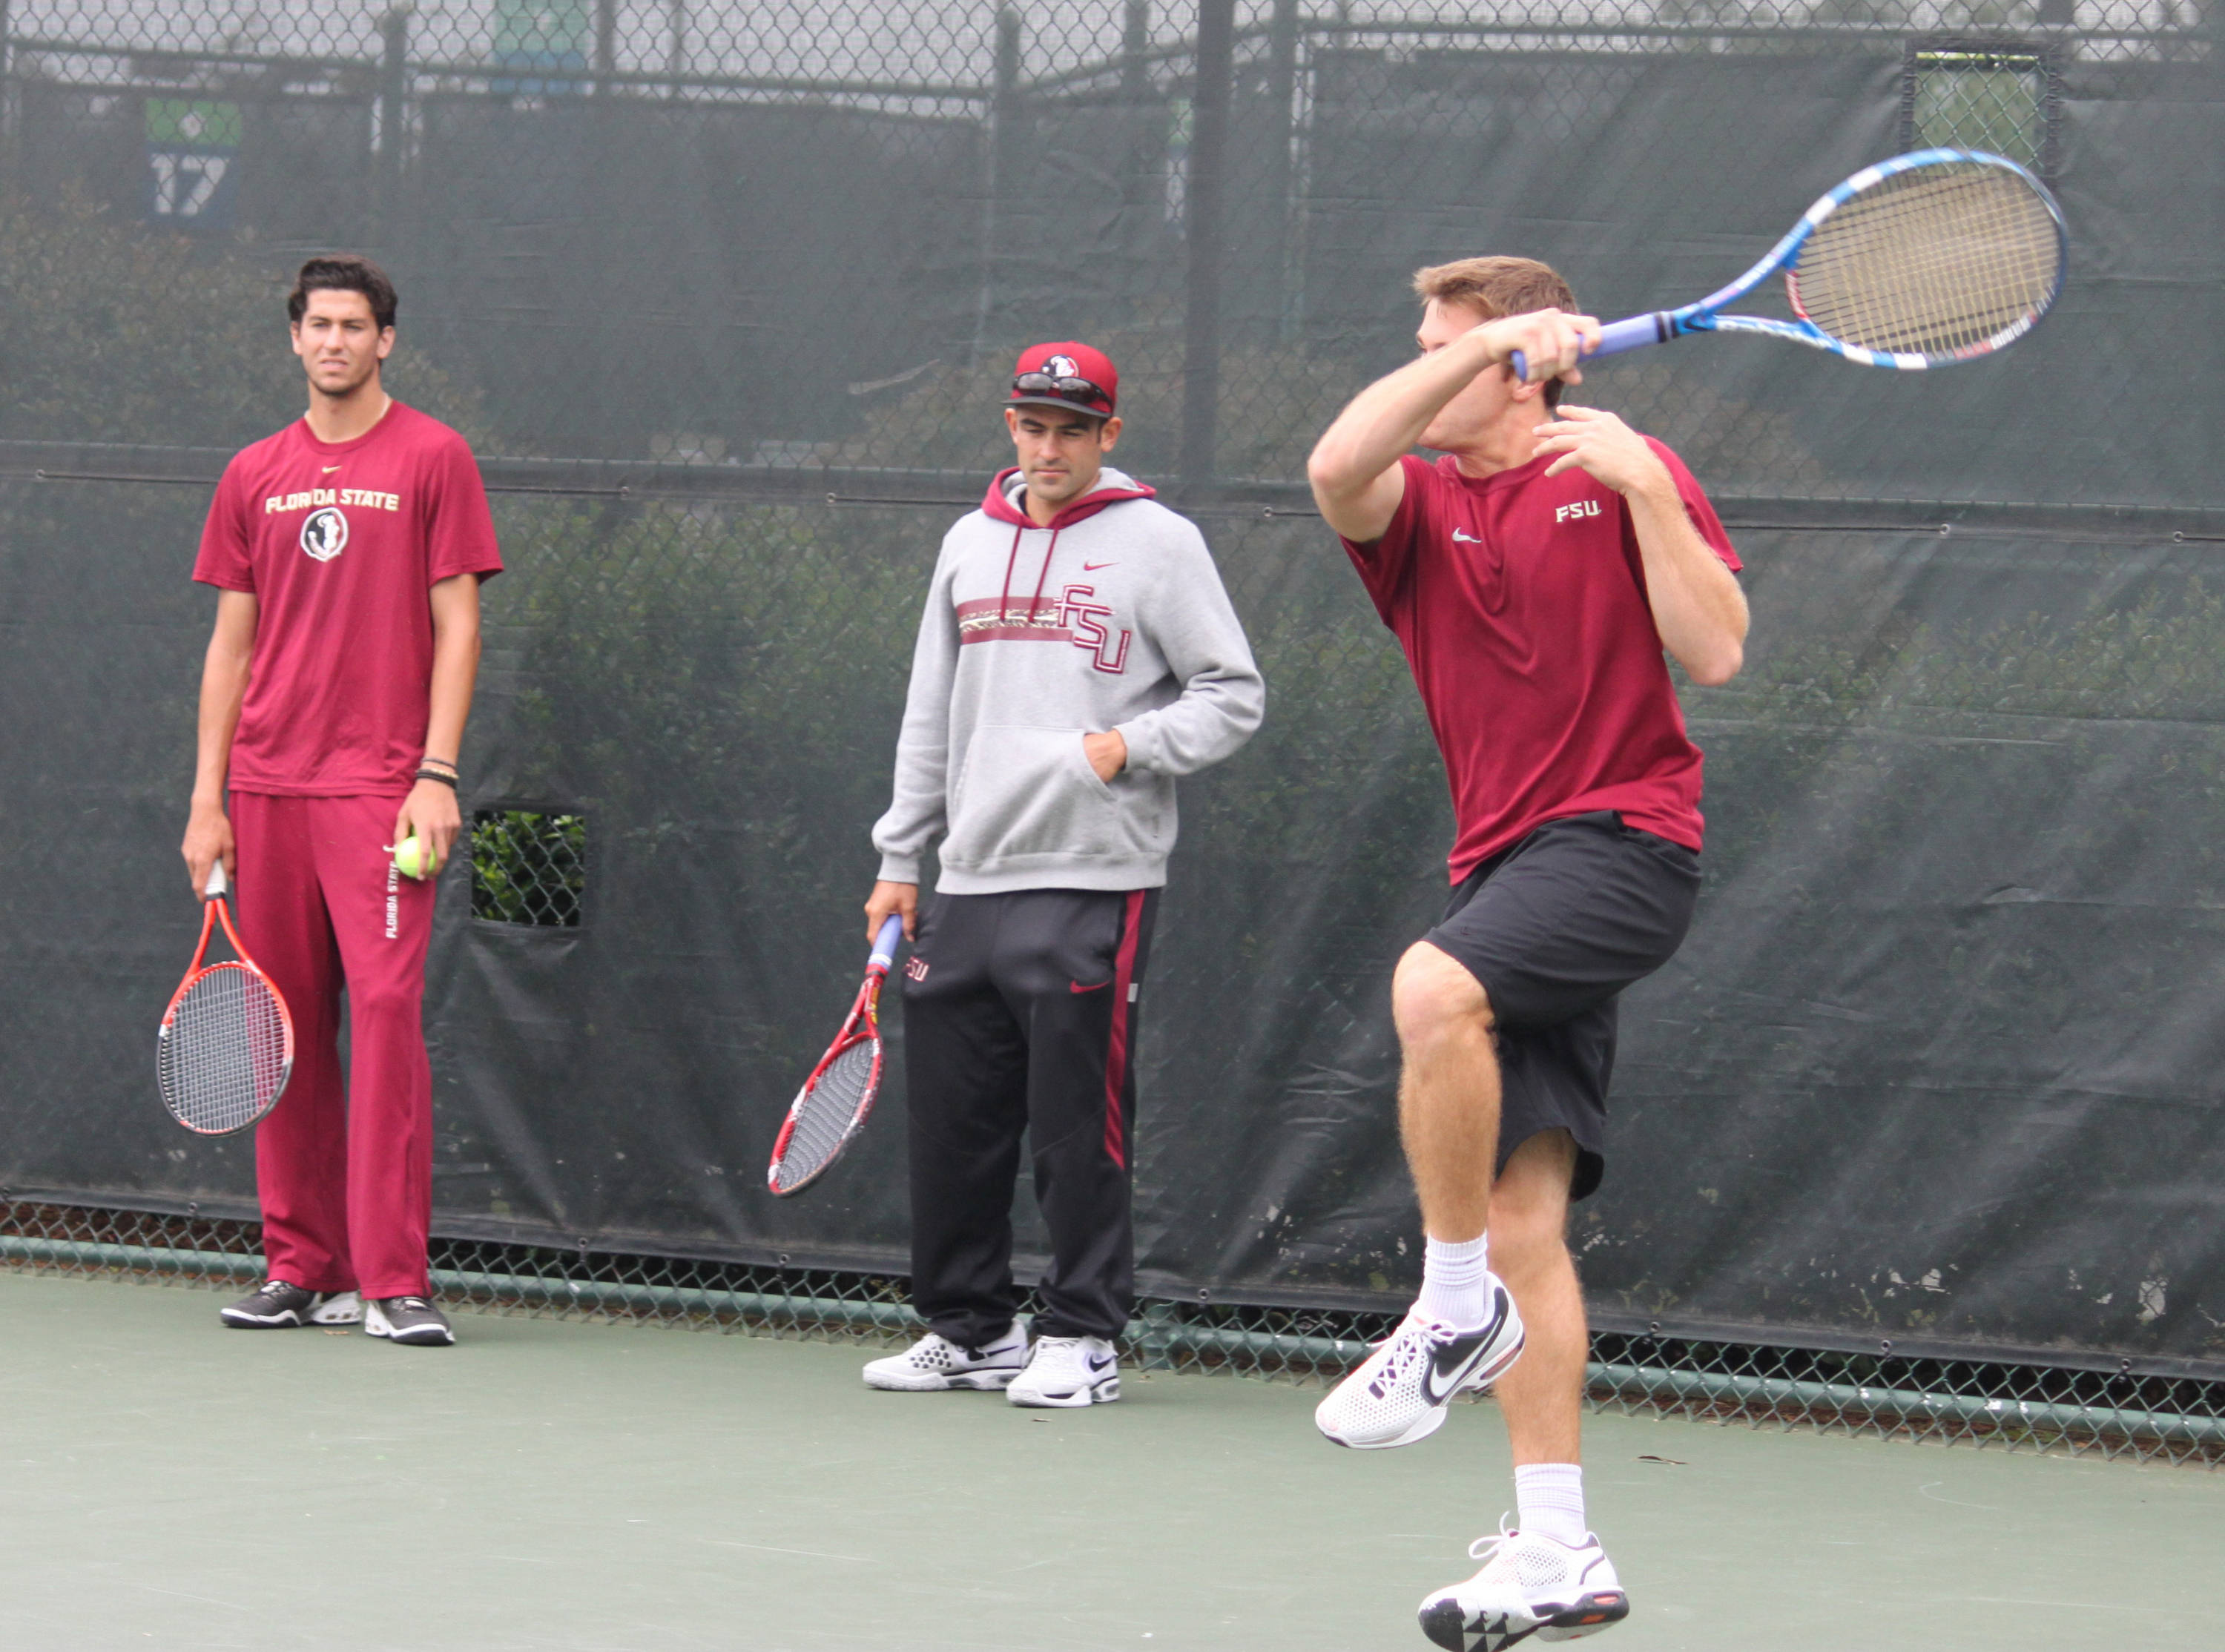 Cristian Gonzalez Mendez, Andy Gerst and Anderson Reed